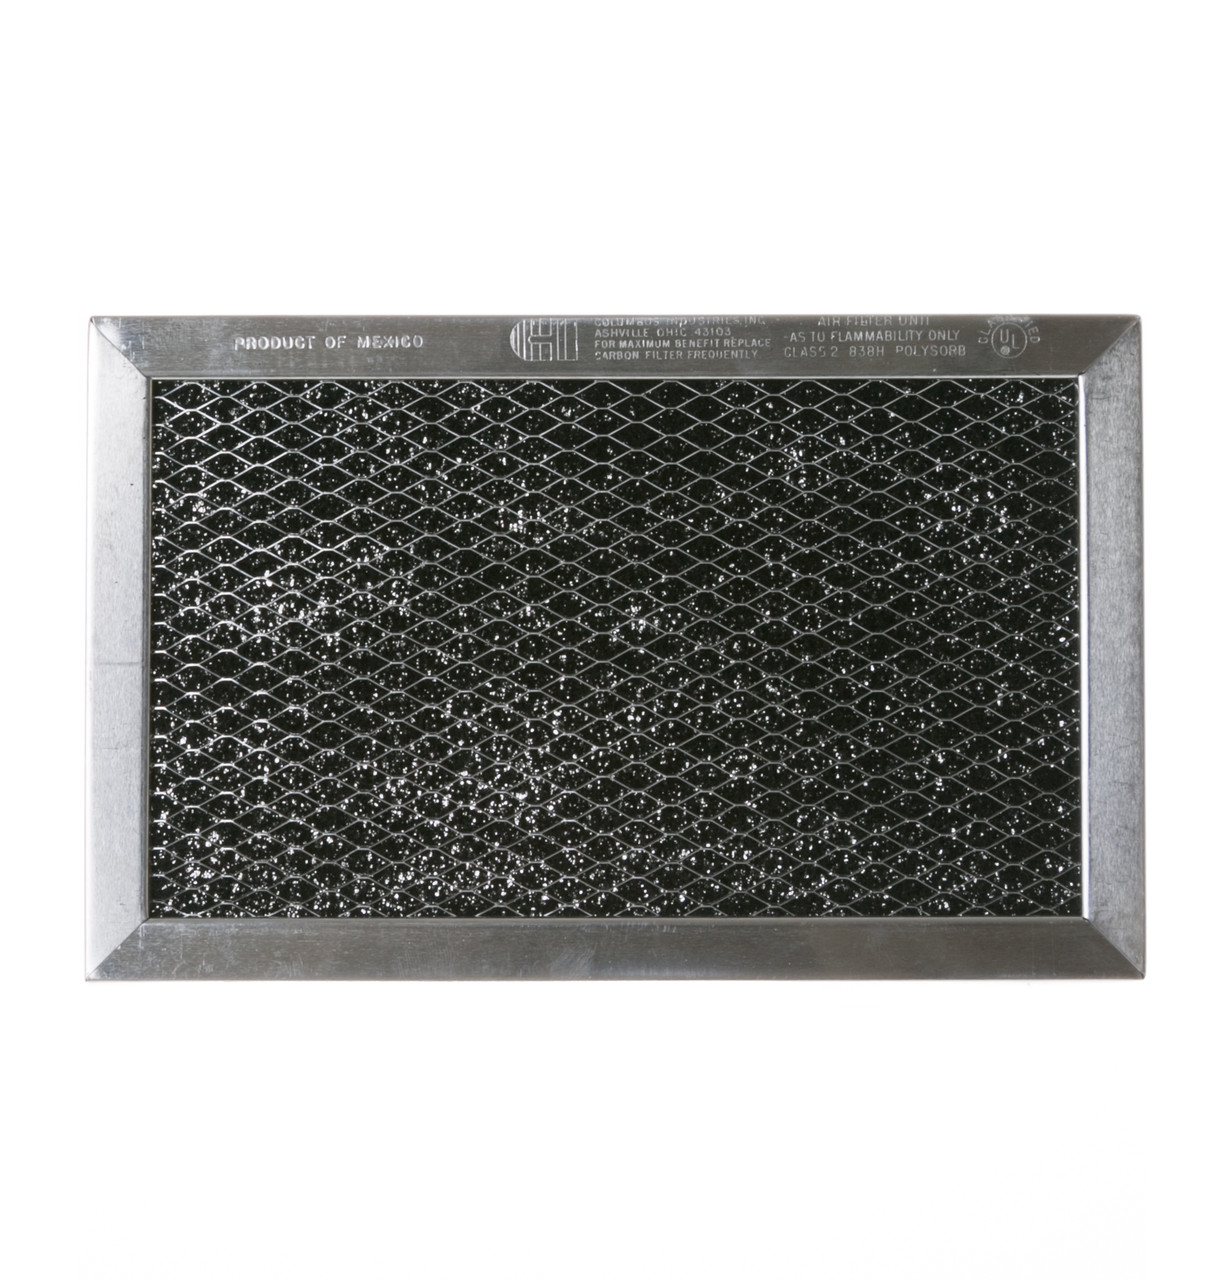 microwave charcoal filter jx81c